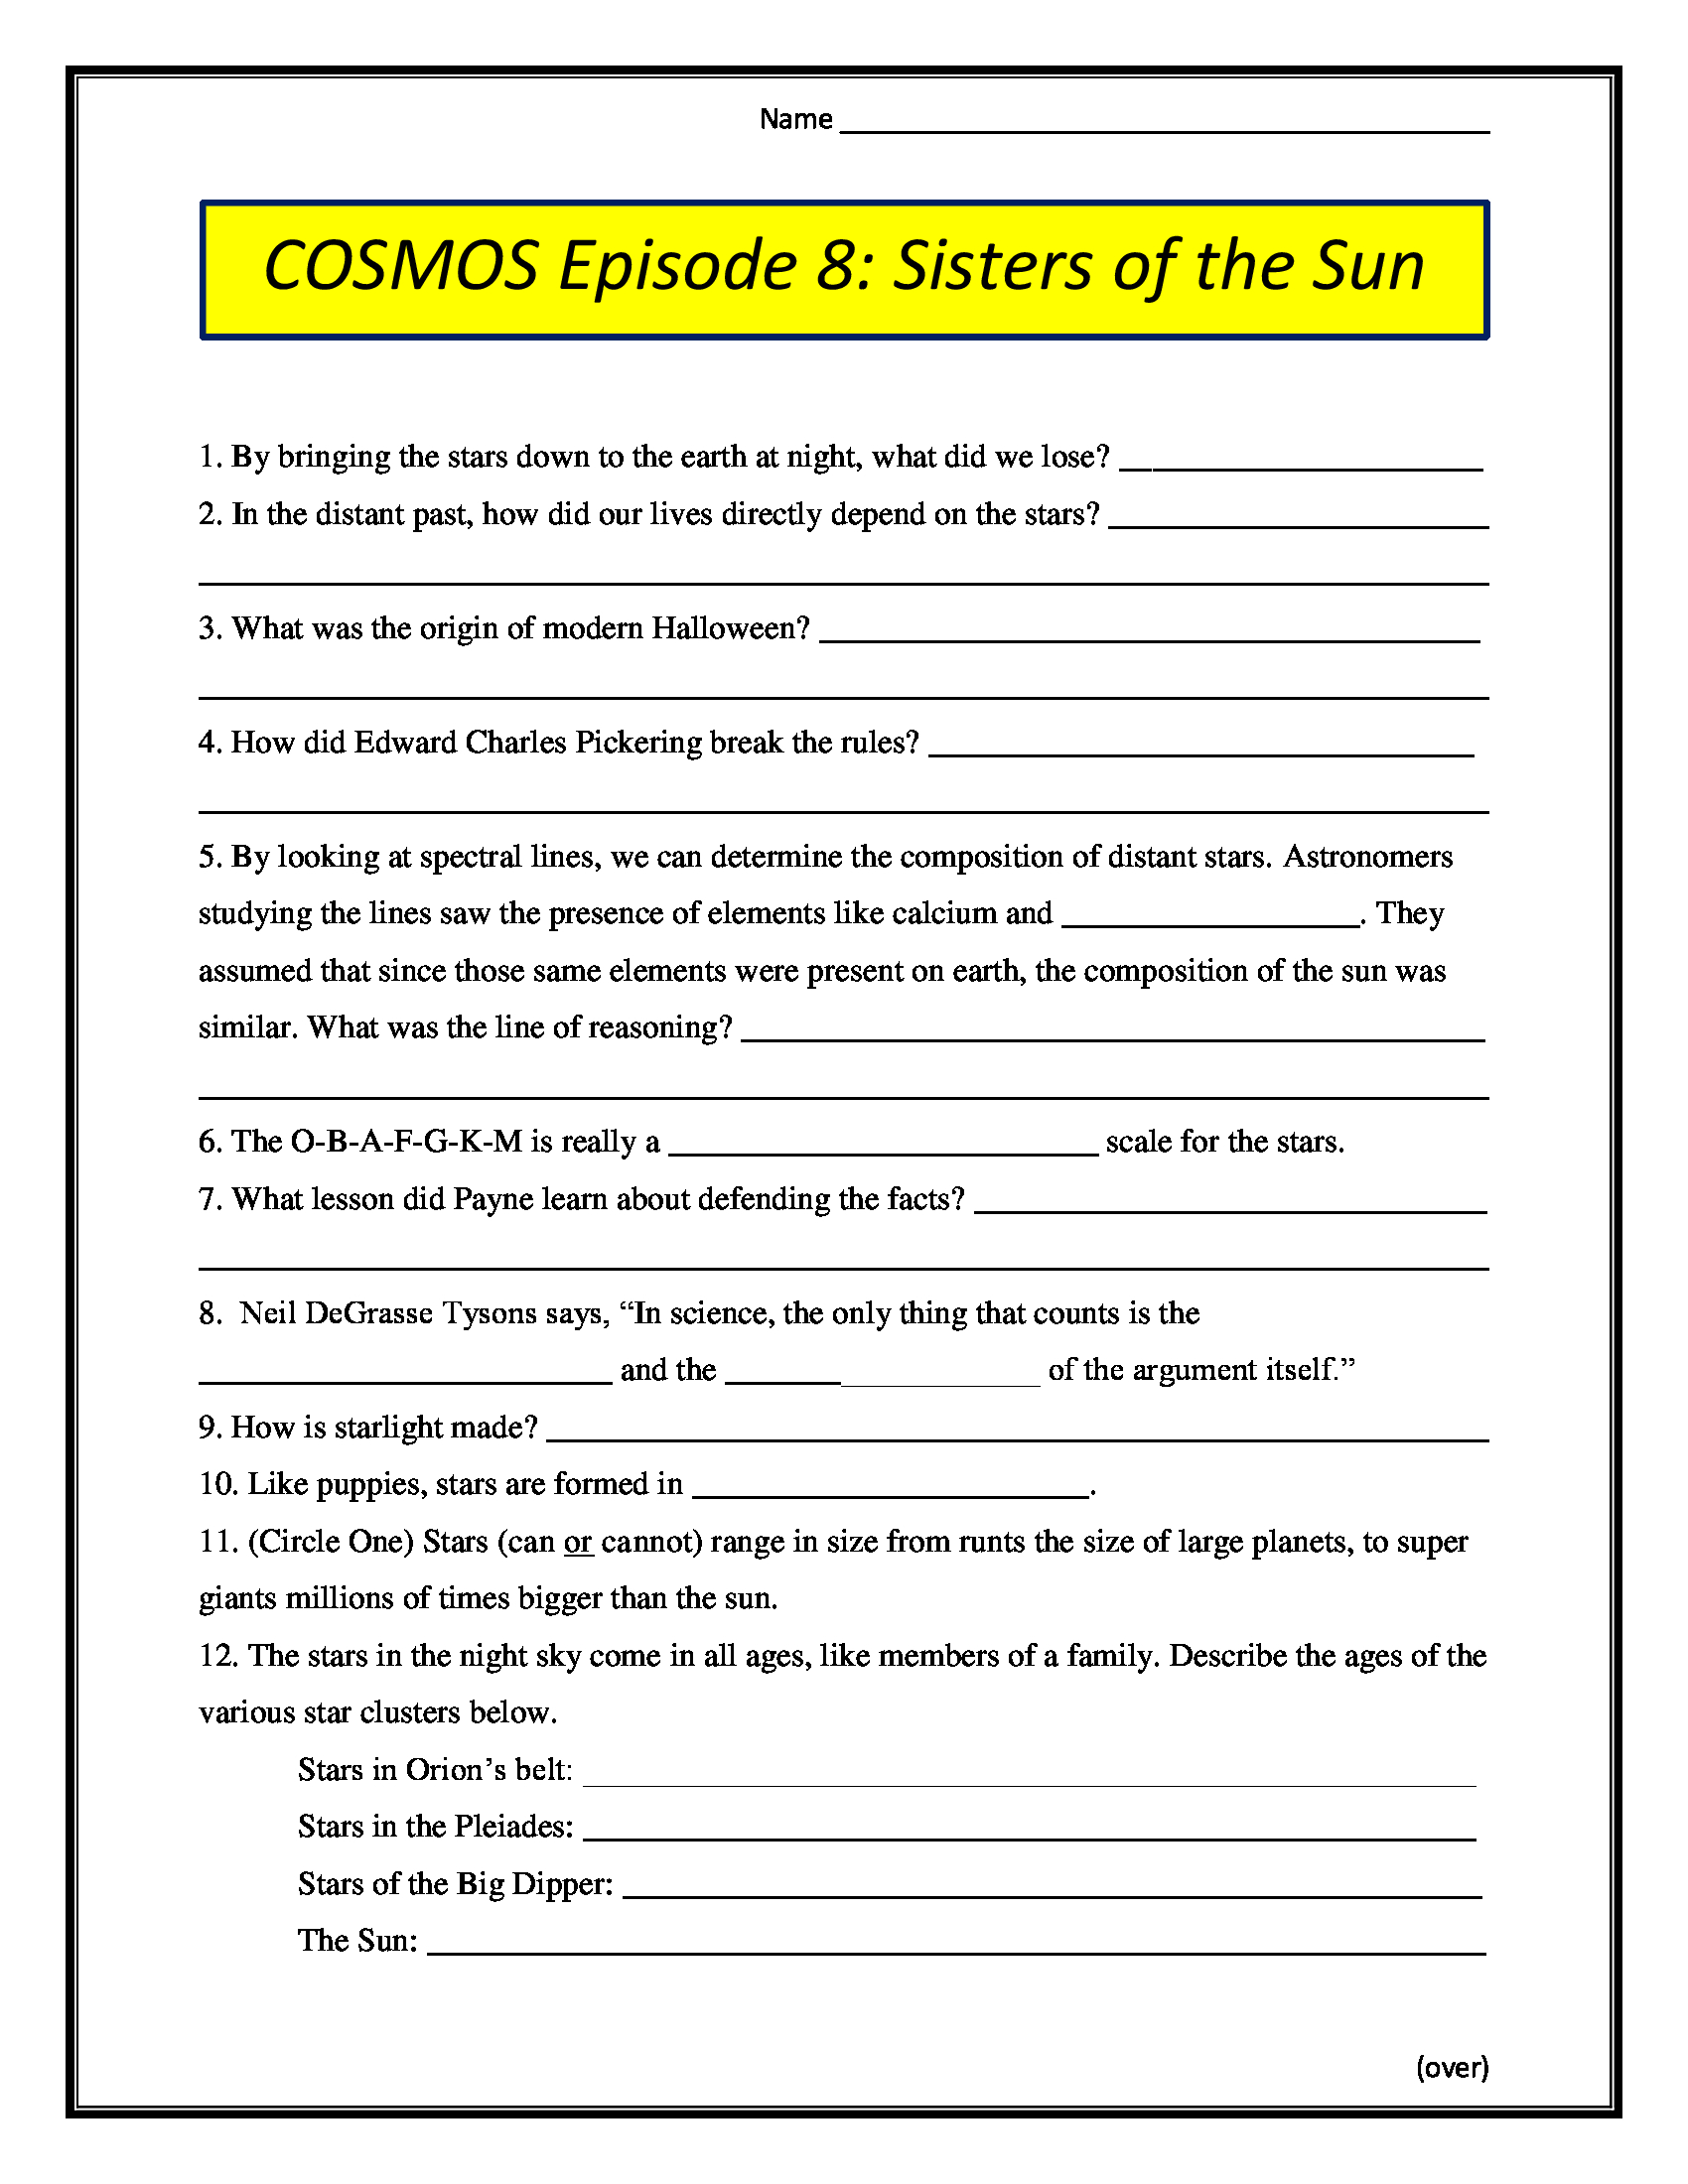 Cosmos Episode 8 Sisters Of The Sun Worksheet